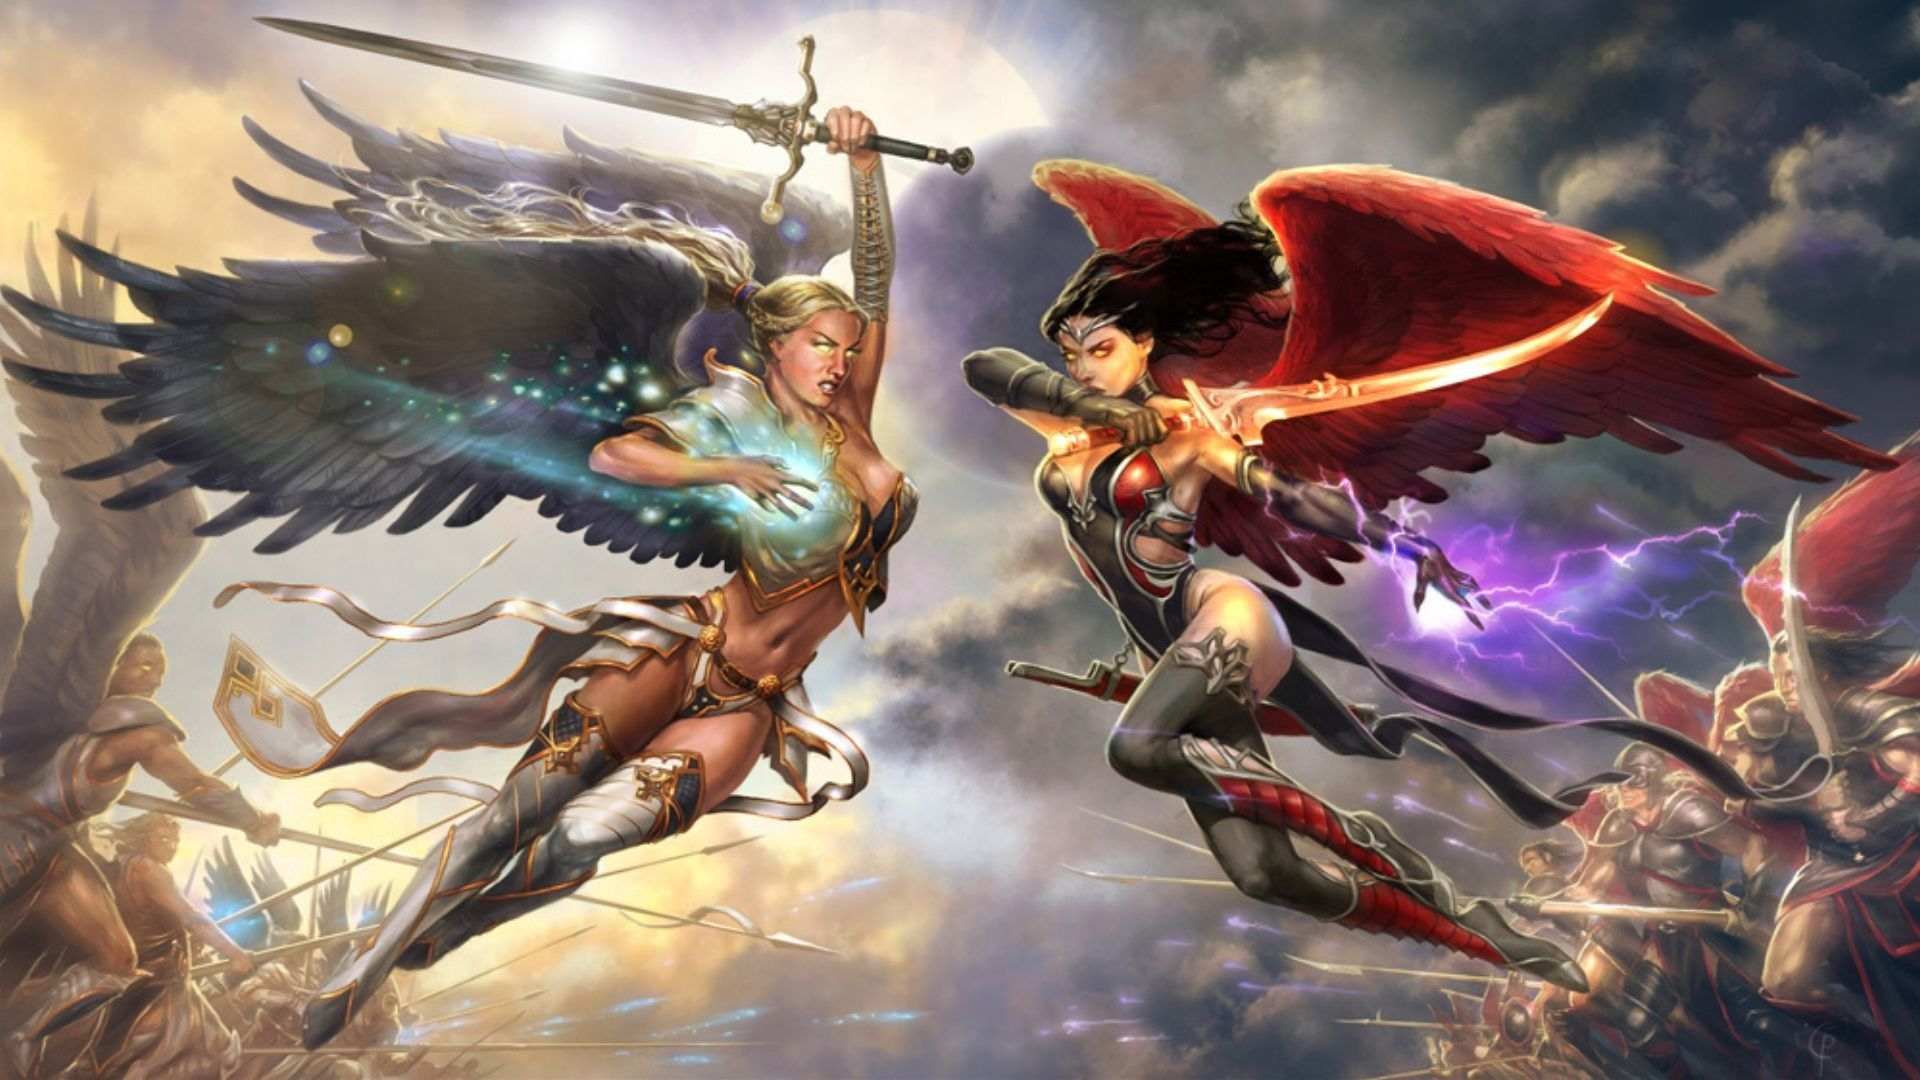 Artwork Battles Fans Fantasy Art Female Warriors Wings